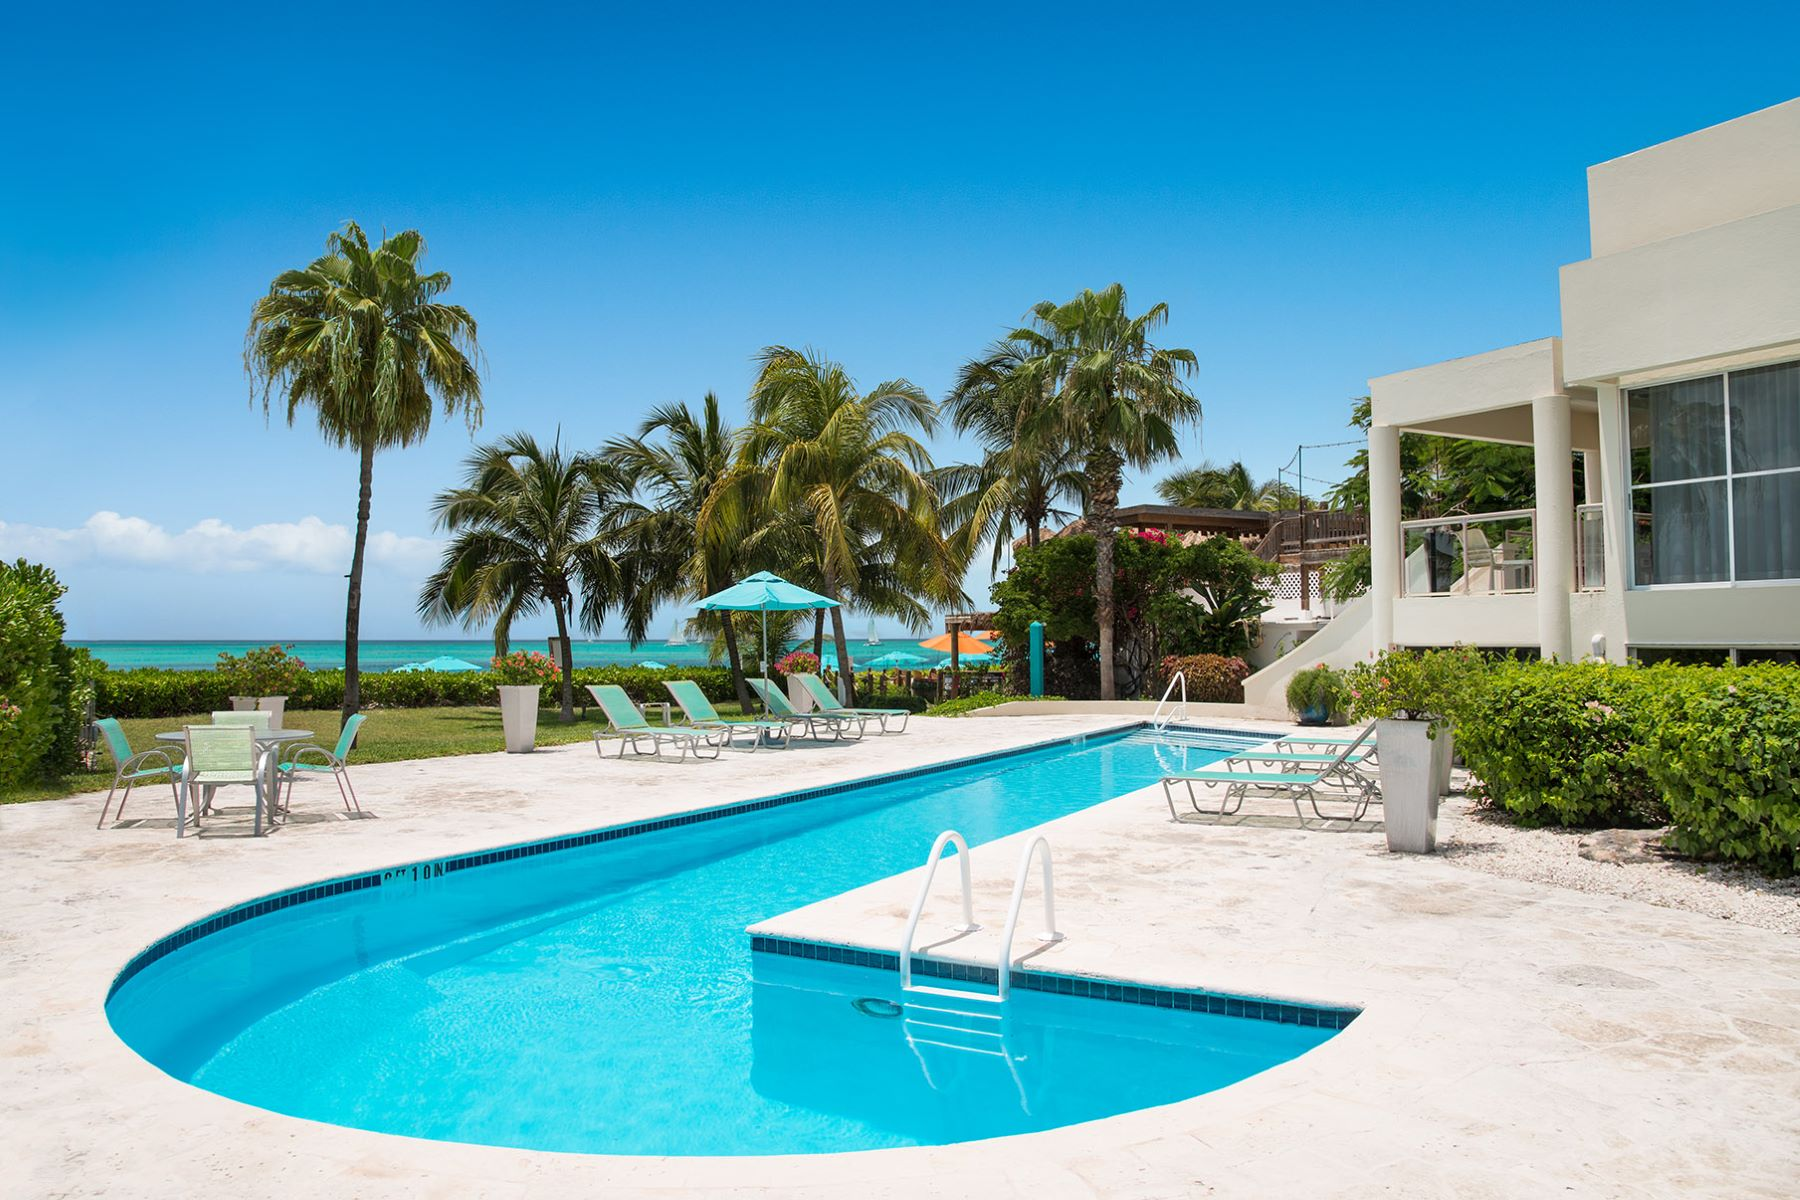 Additional photo for property listing at Coral Gardens - Suite 4205 Beachfront Grace Bay, Providenciales TKCA 1ZZ Islas Turcas Y Caicos